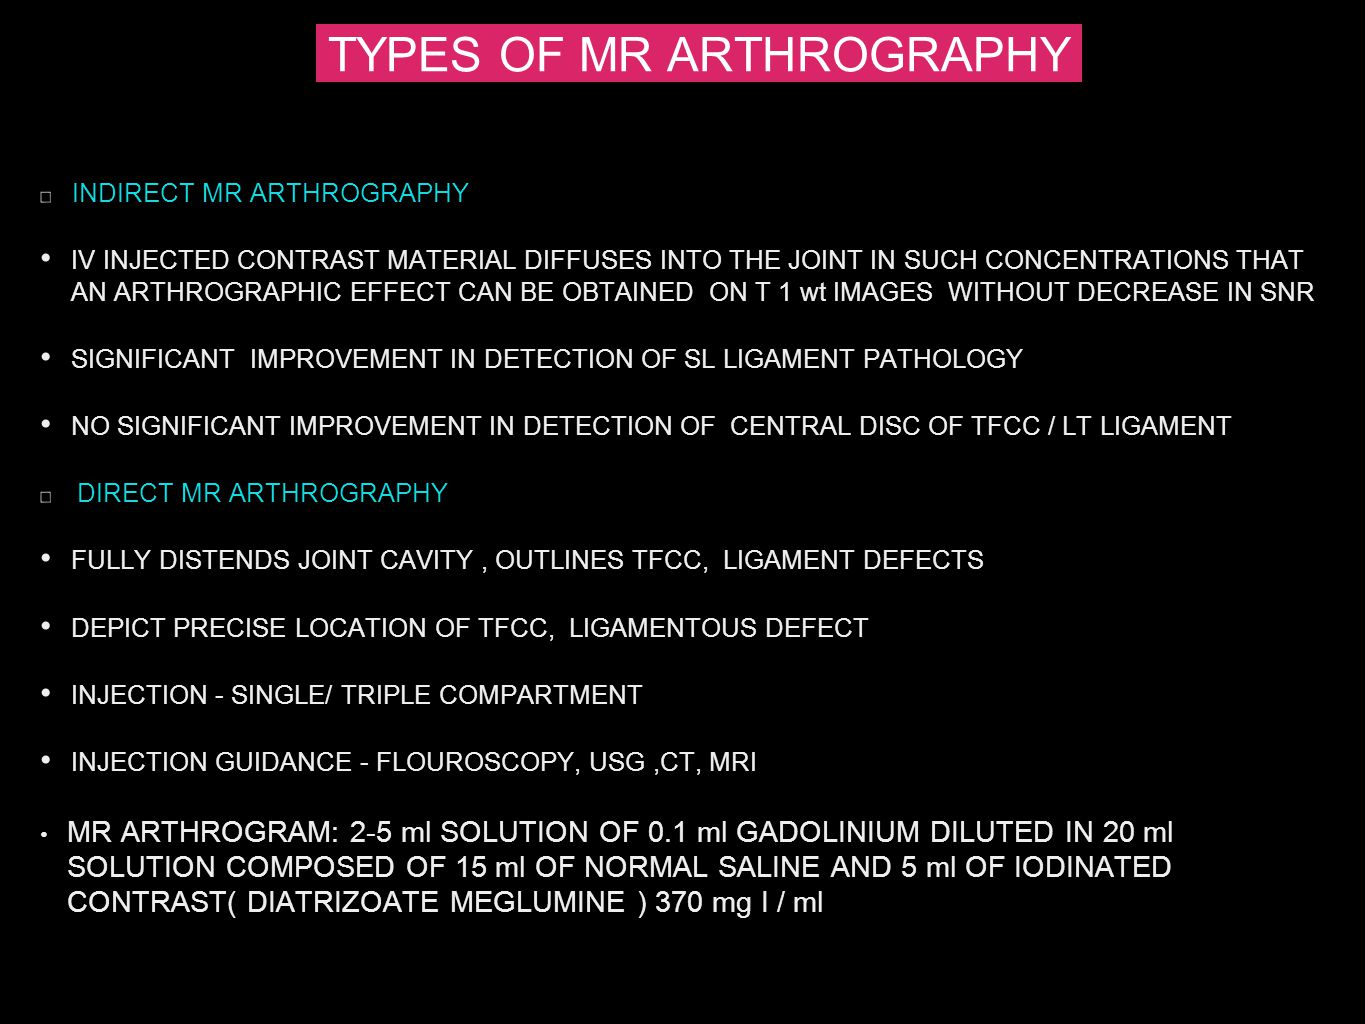 TYPES OF MR ARTHROGRAPHY